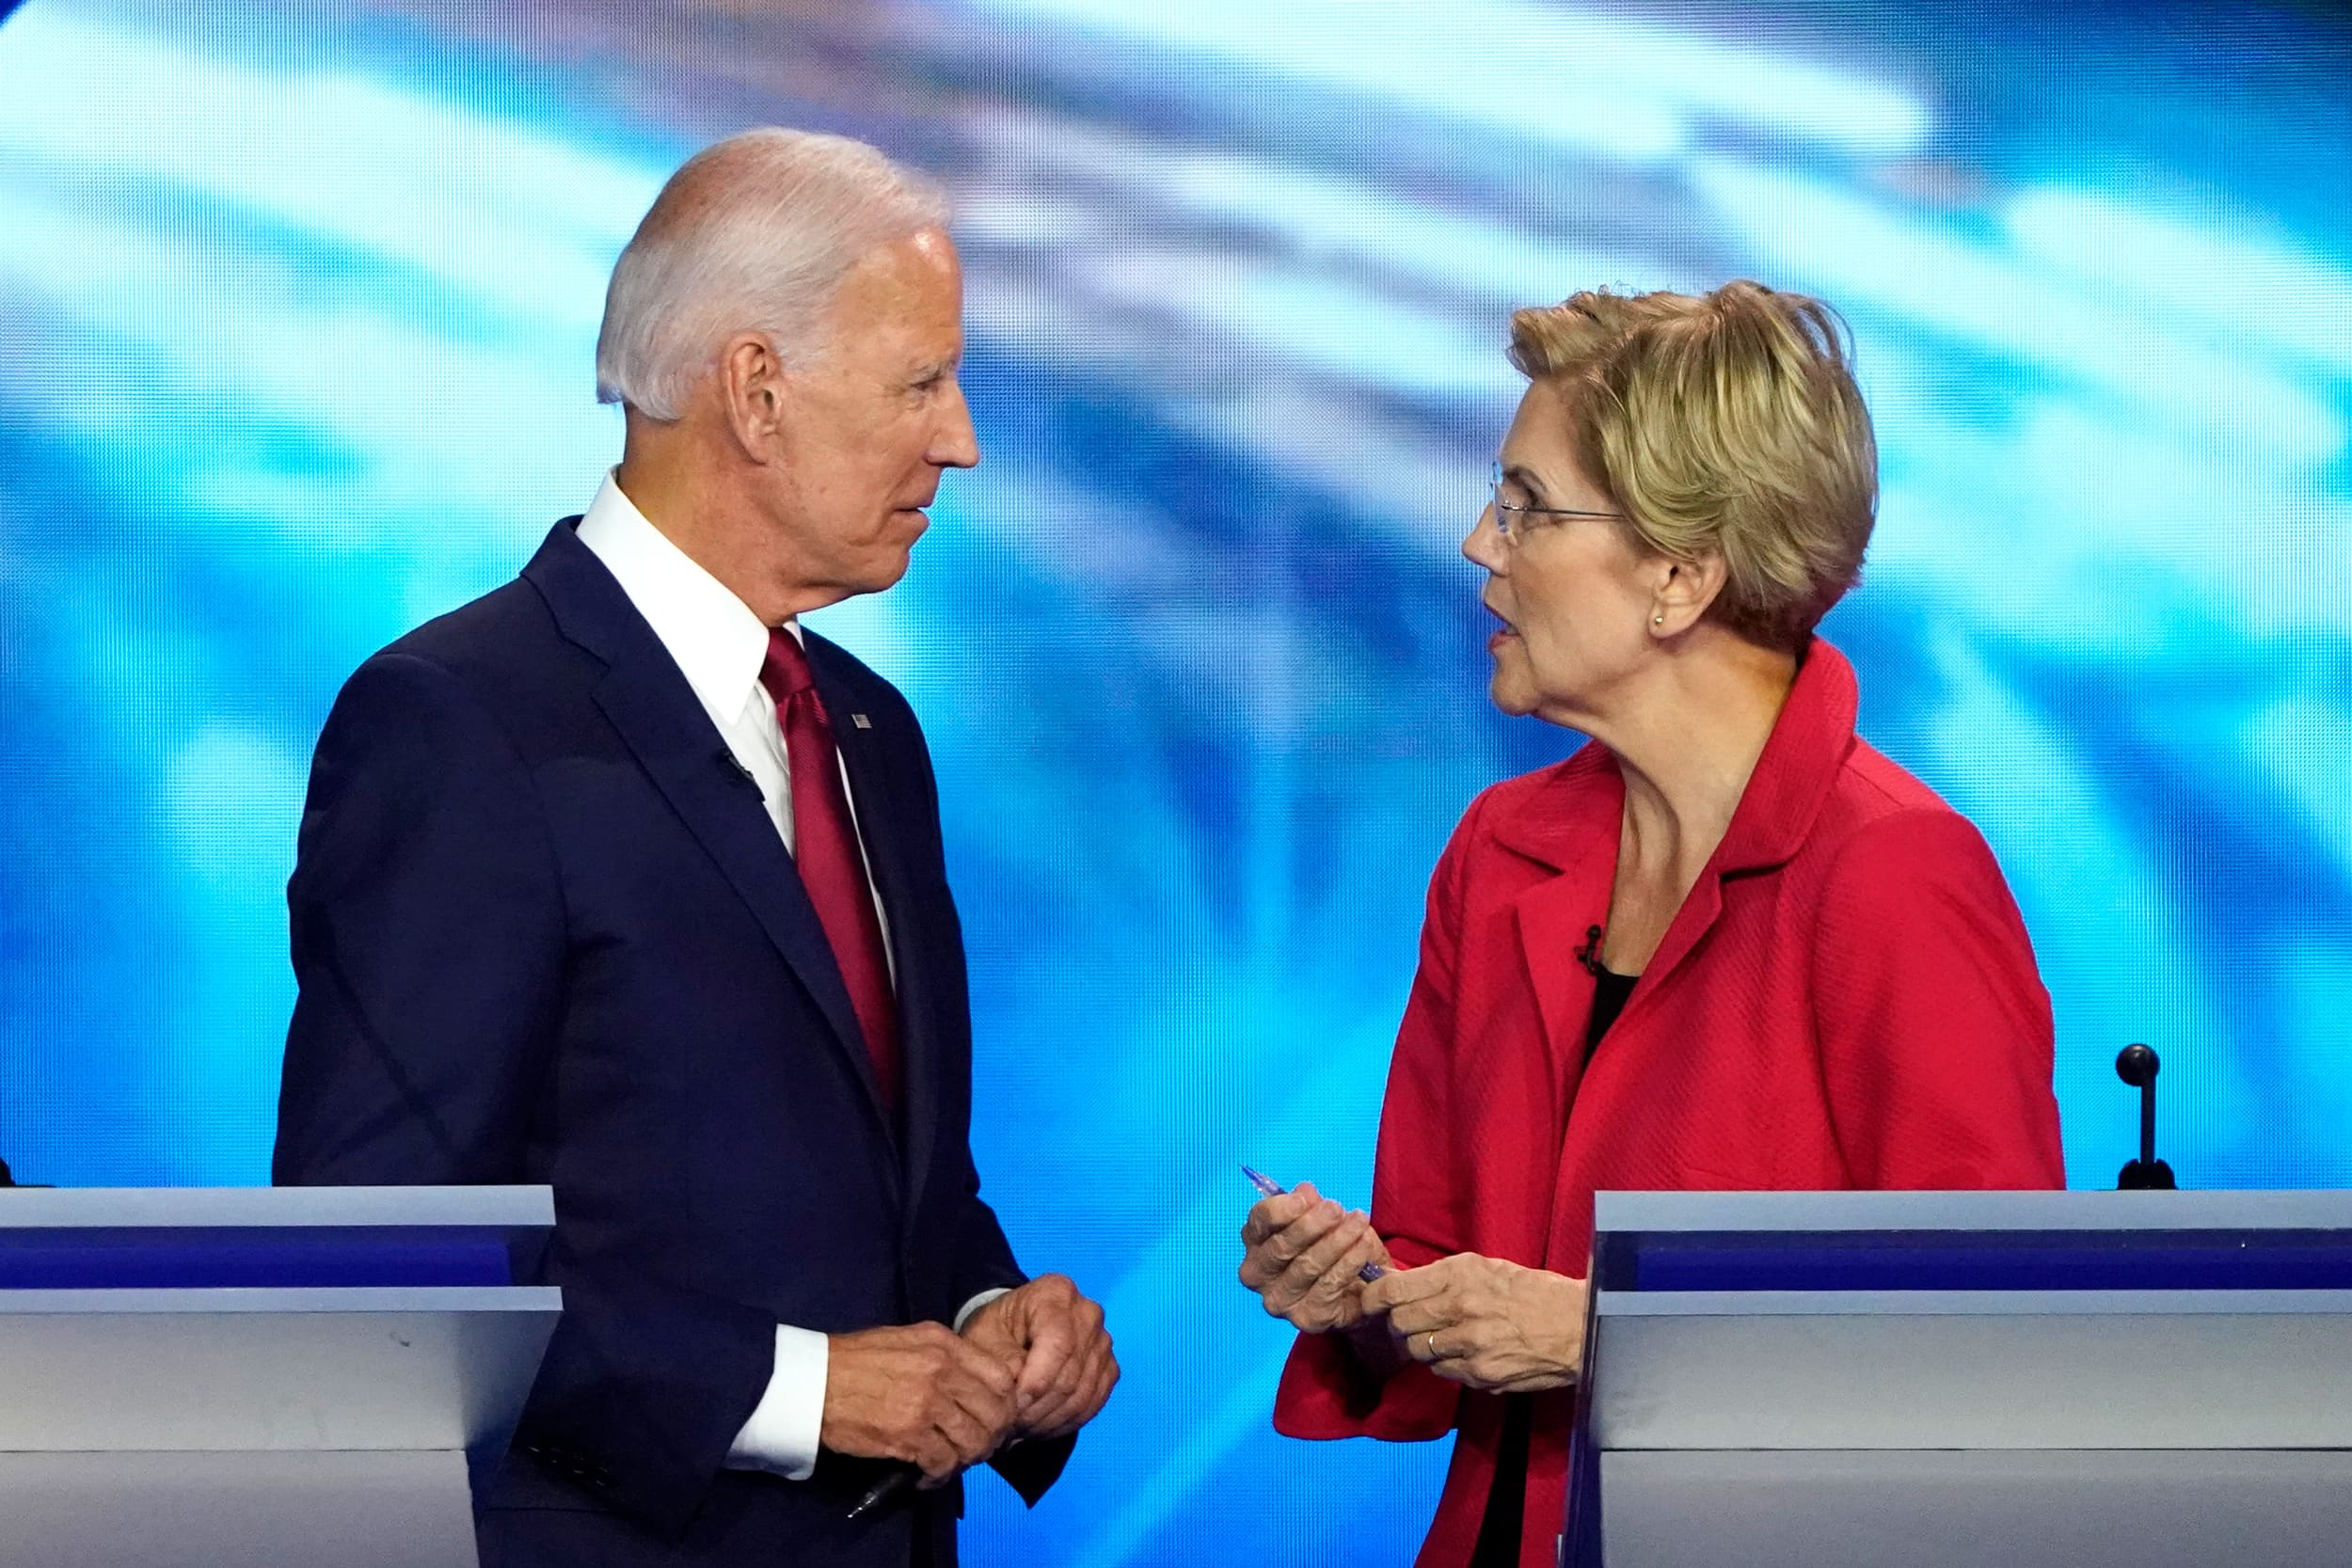 Trade, capitalism, money in politics: These are the business issues to watch in the fourth Democratic debate